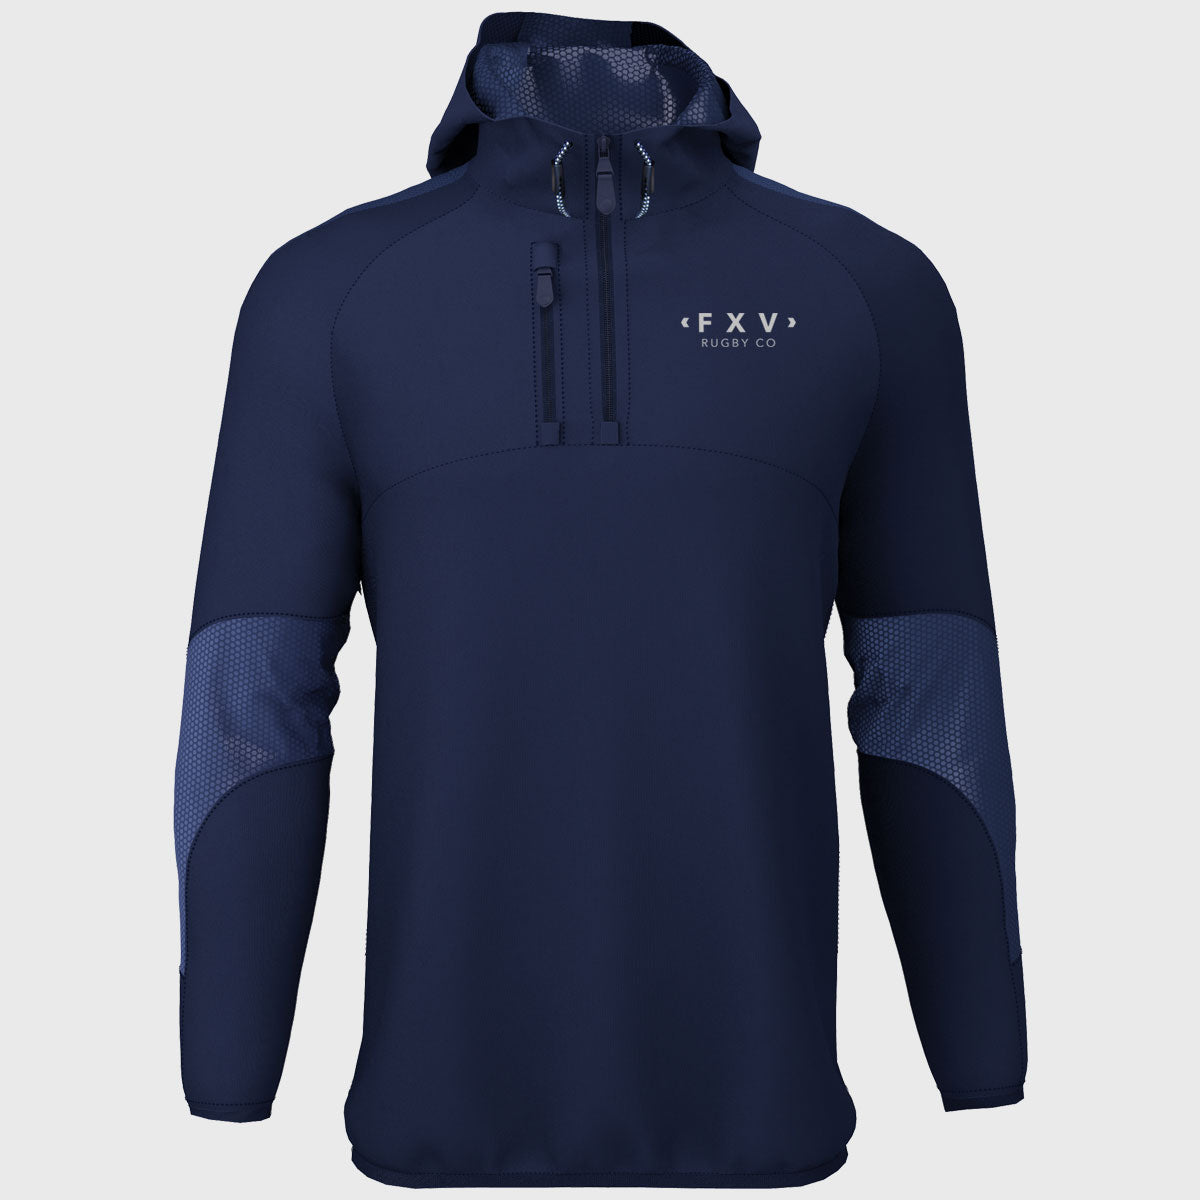 1/4 Zip Hooded Jacket Navy - First XV rugbystuff.com